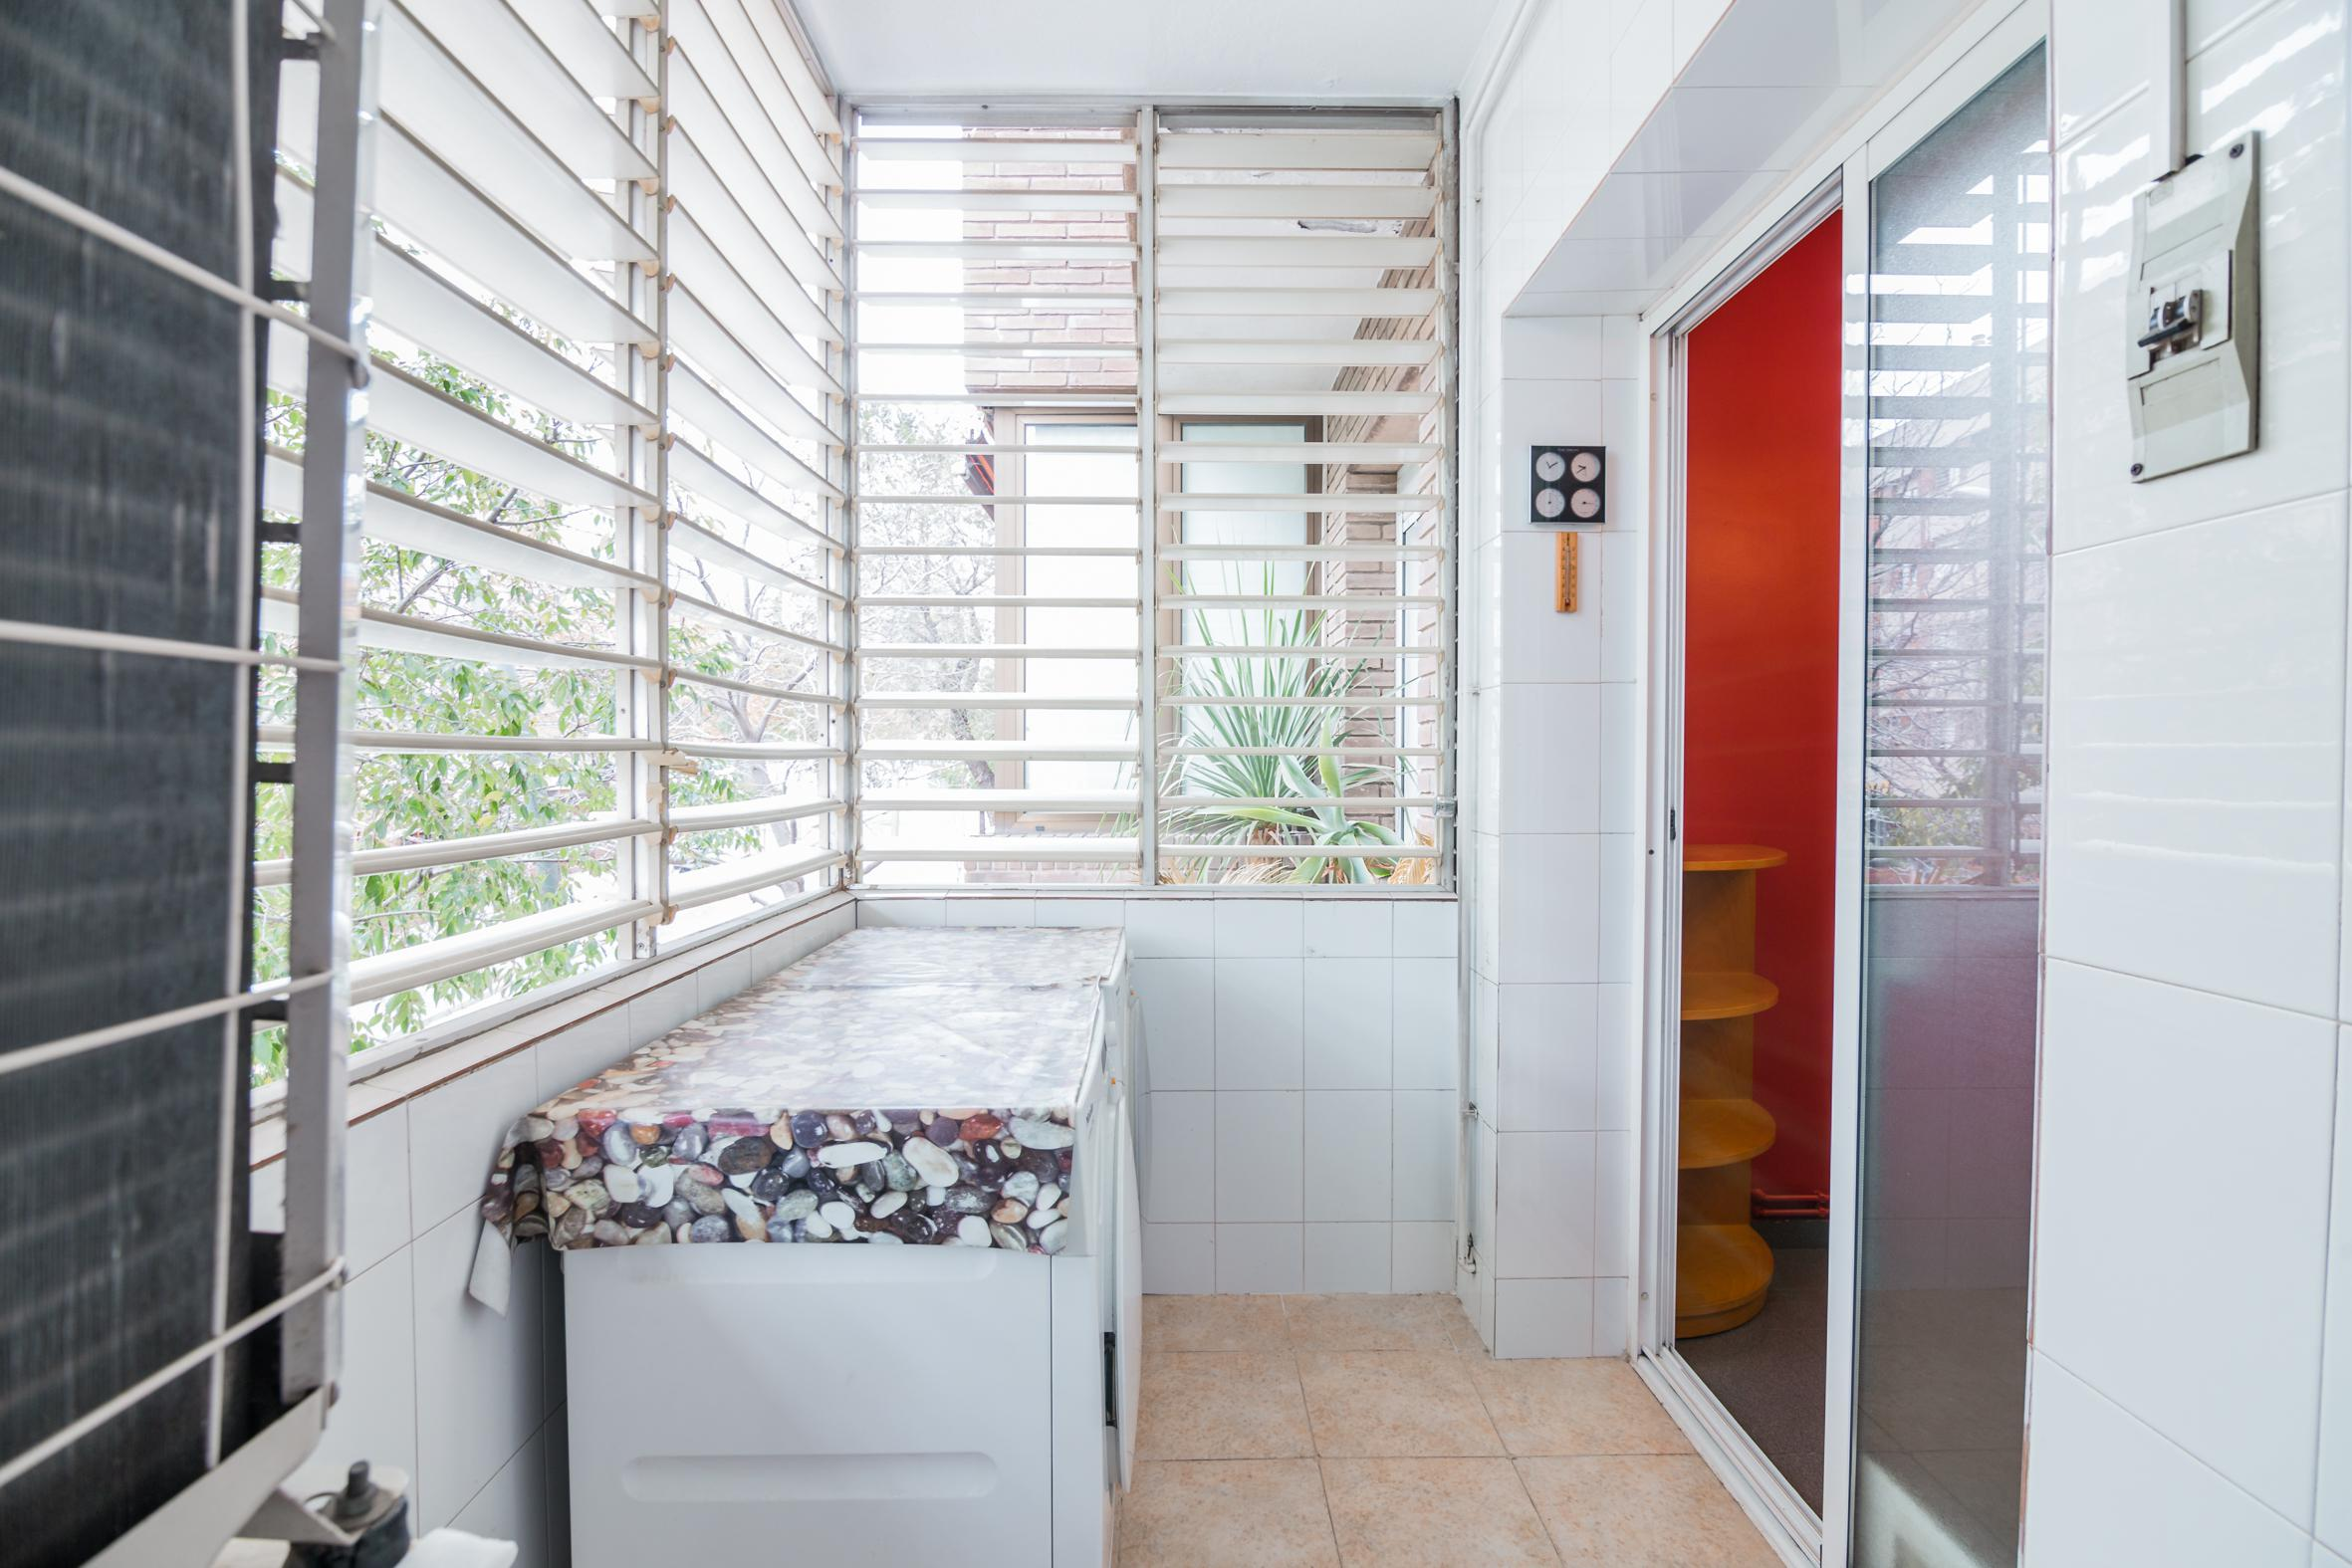 246902 Flat for sale in Les Corts, Pedralbes 28